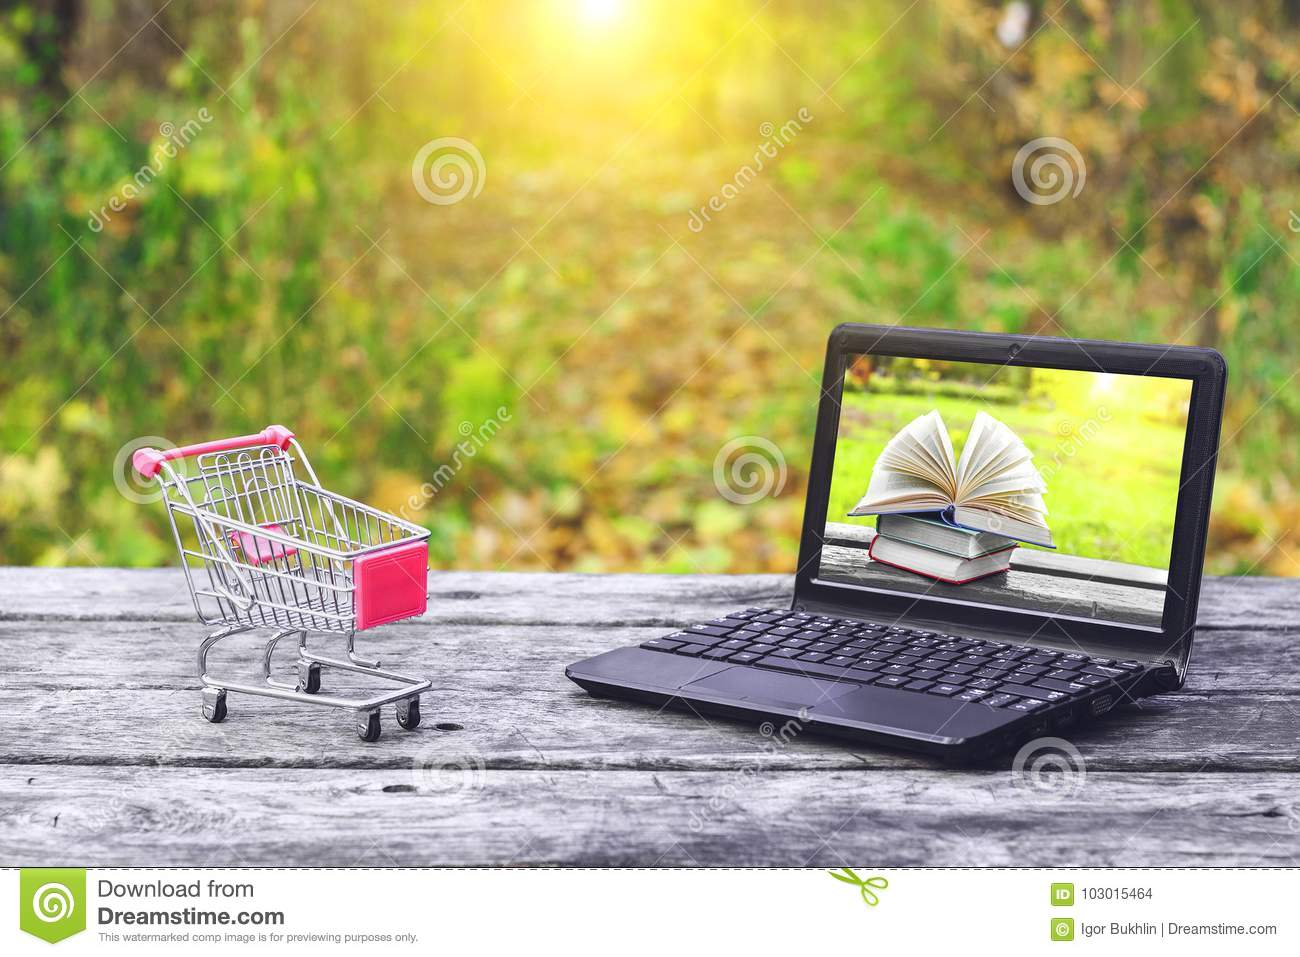 Shopping cart and laptop with books on the screen on the old wooden table at the nature background. Back to school, education.